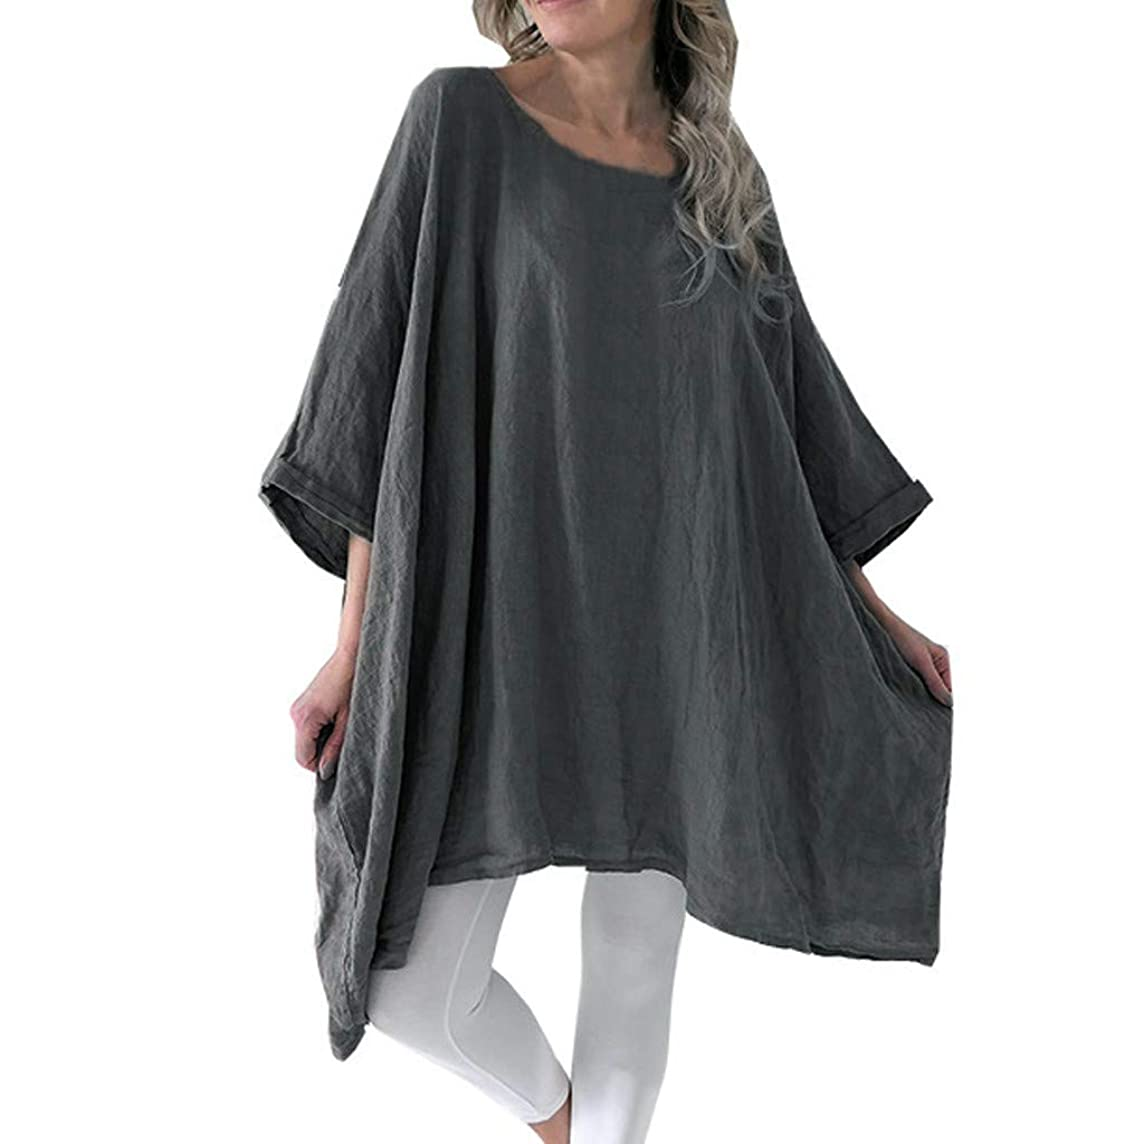 TUSANG Women Tees Cotton Linen Batwing Half Sleevel Shirt Irregular Hem Casual Loose Blouse Loose Fit Comfy Tunic